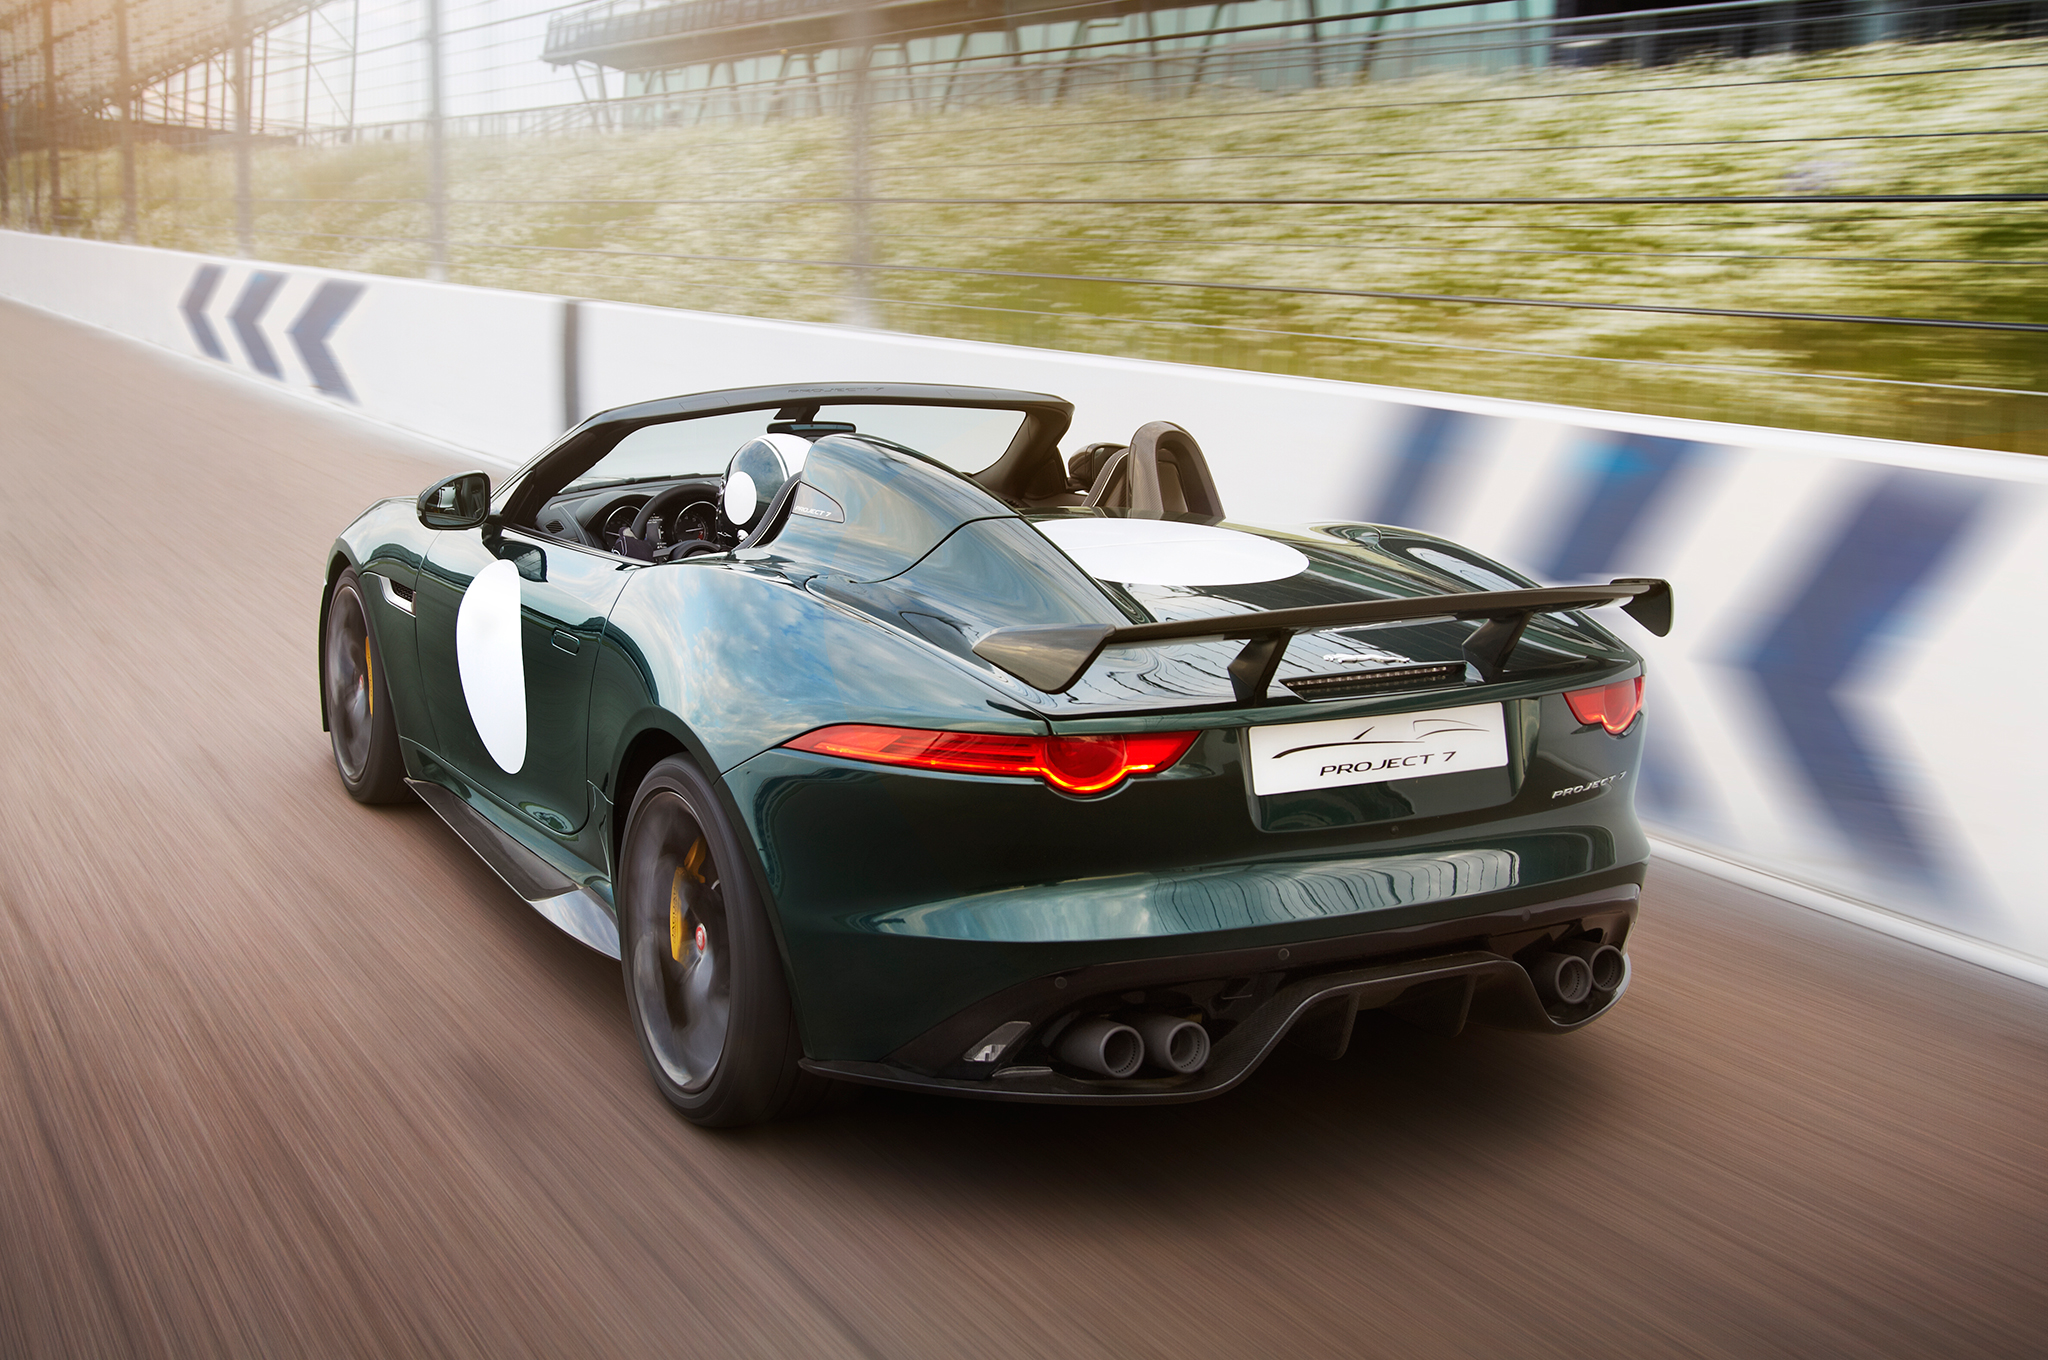 medium resolution of 567 hp jaguar f type project 7 production model revealed